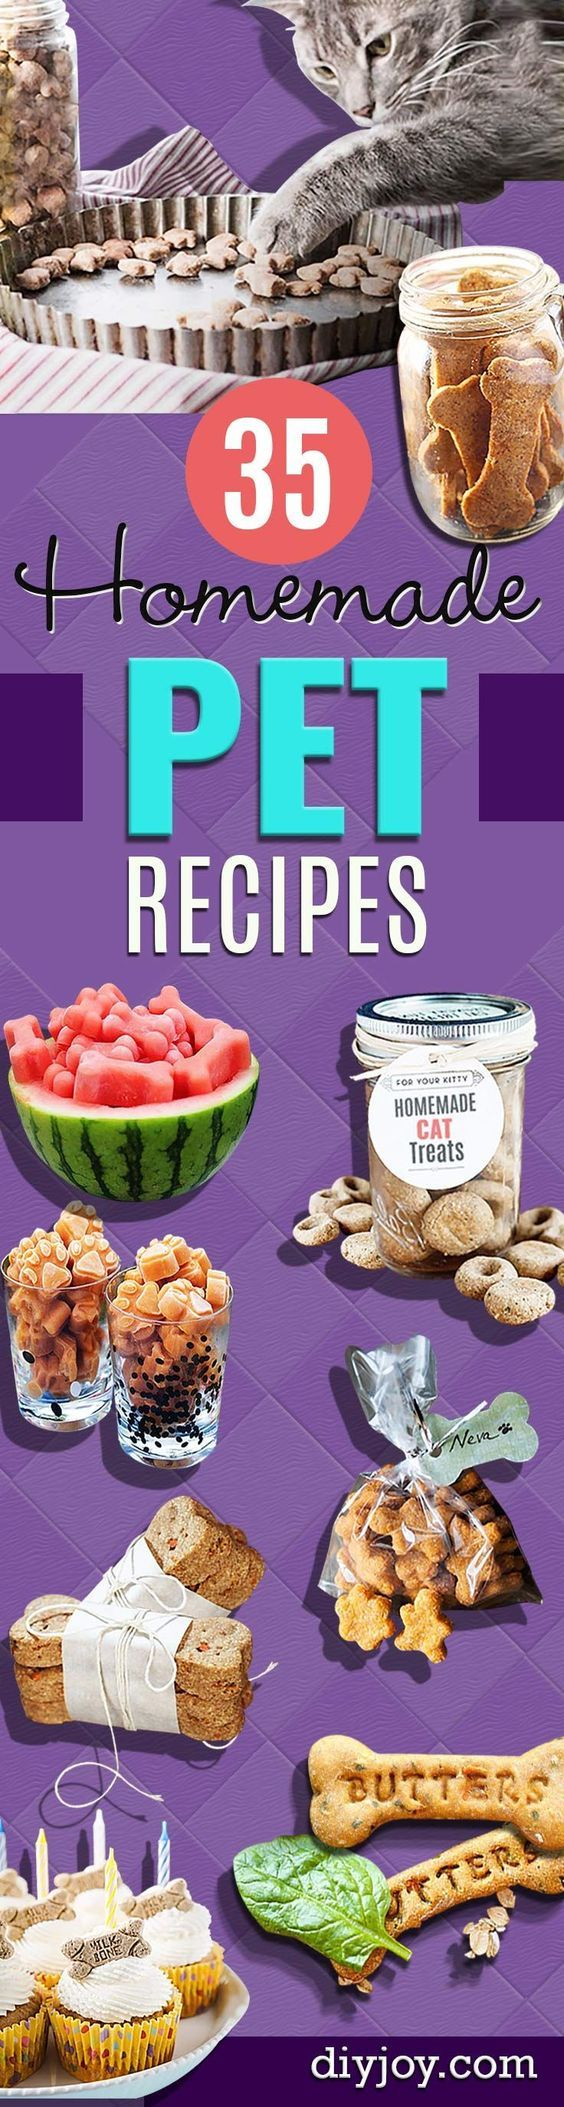 DIY Pet Recipes For Treats and Food - Dogs, Cats and Puppies Will Love These…